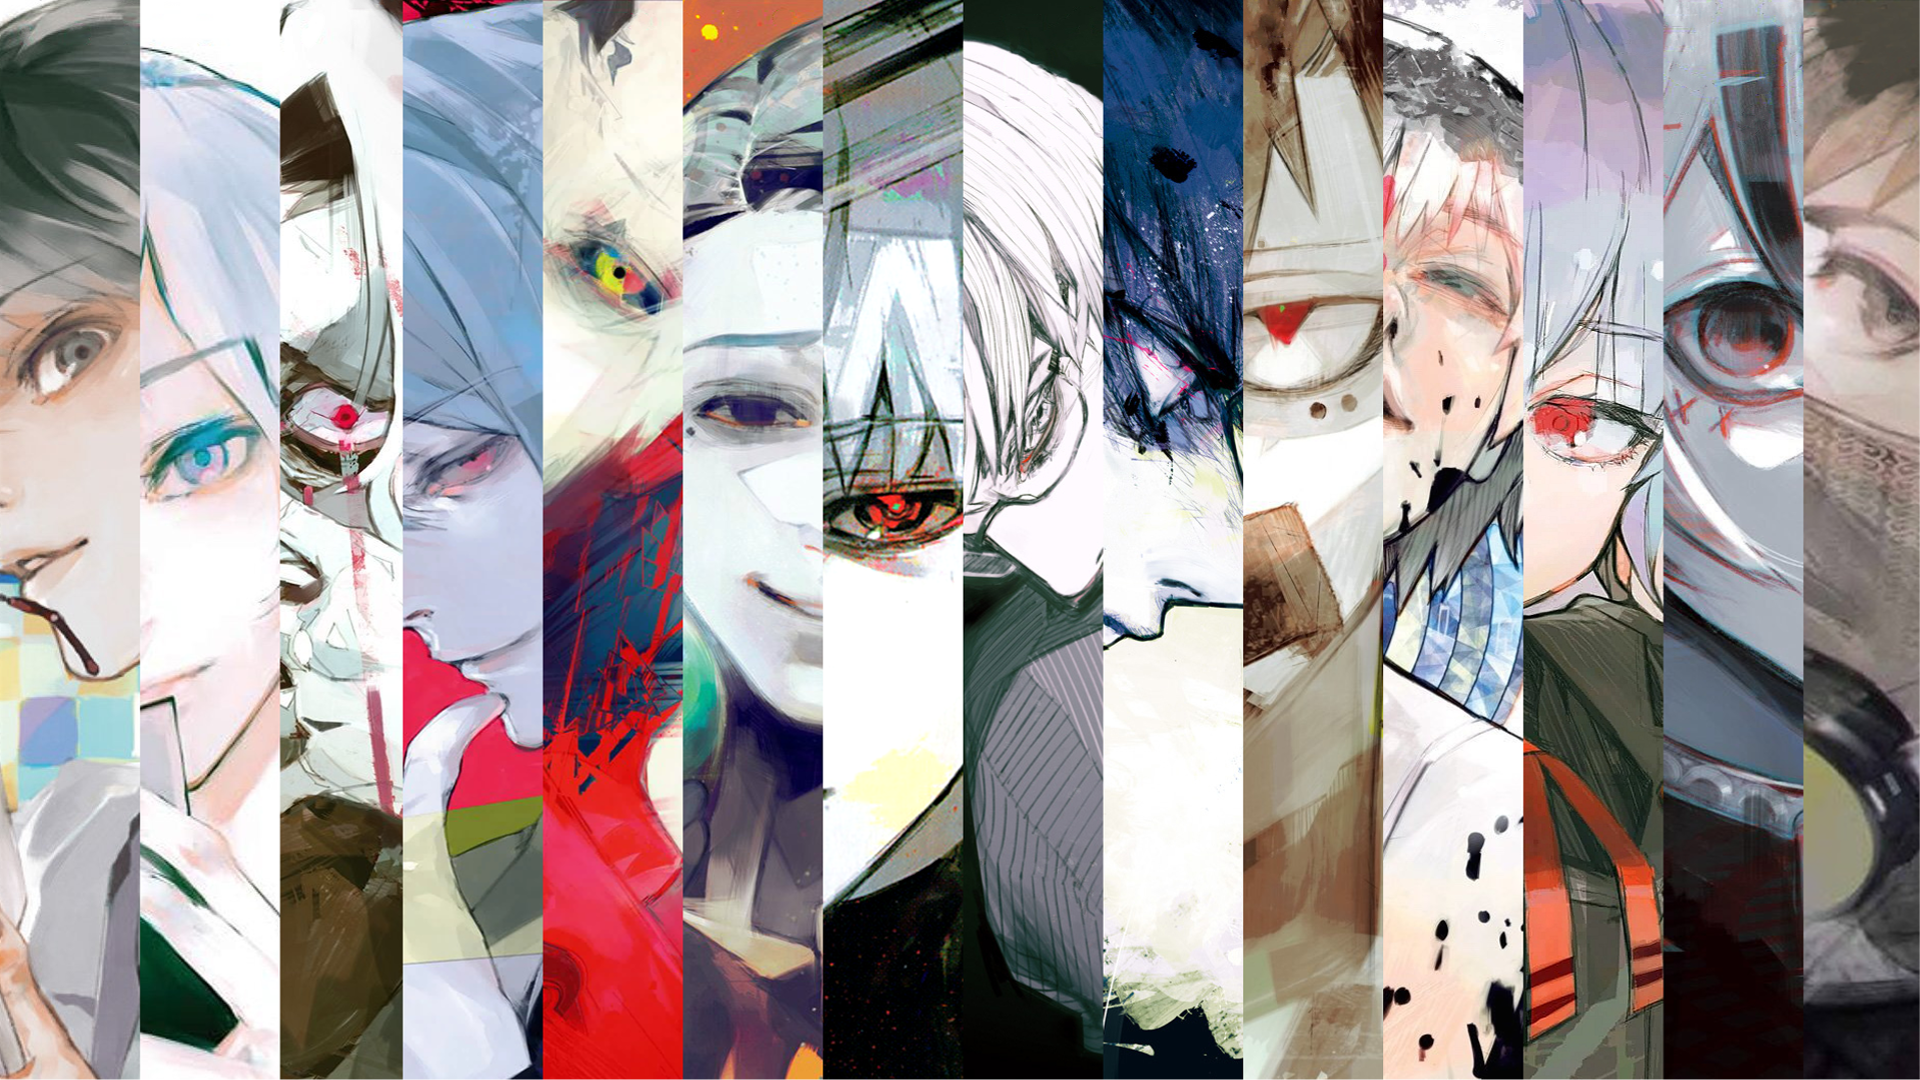 Tokyo Ghoul Re Volume Covers Wallpaper 1920x1080 東京喰種